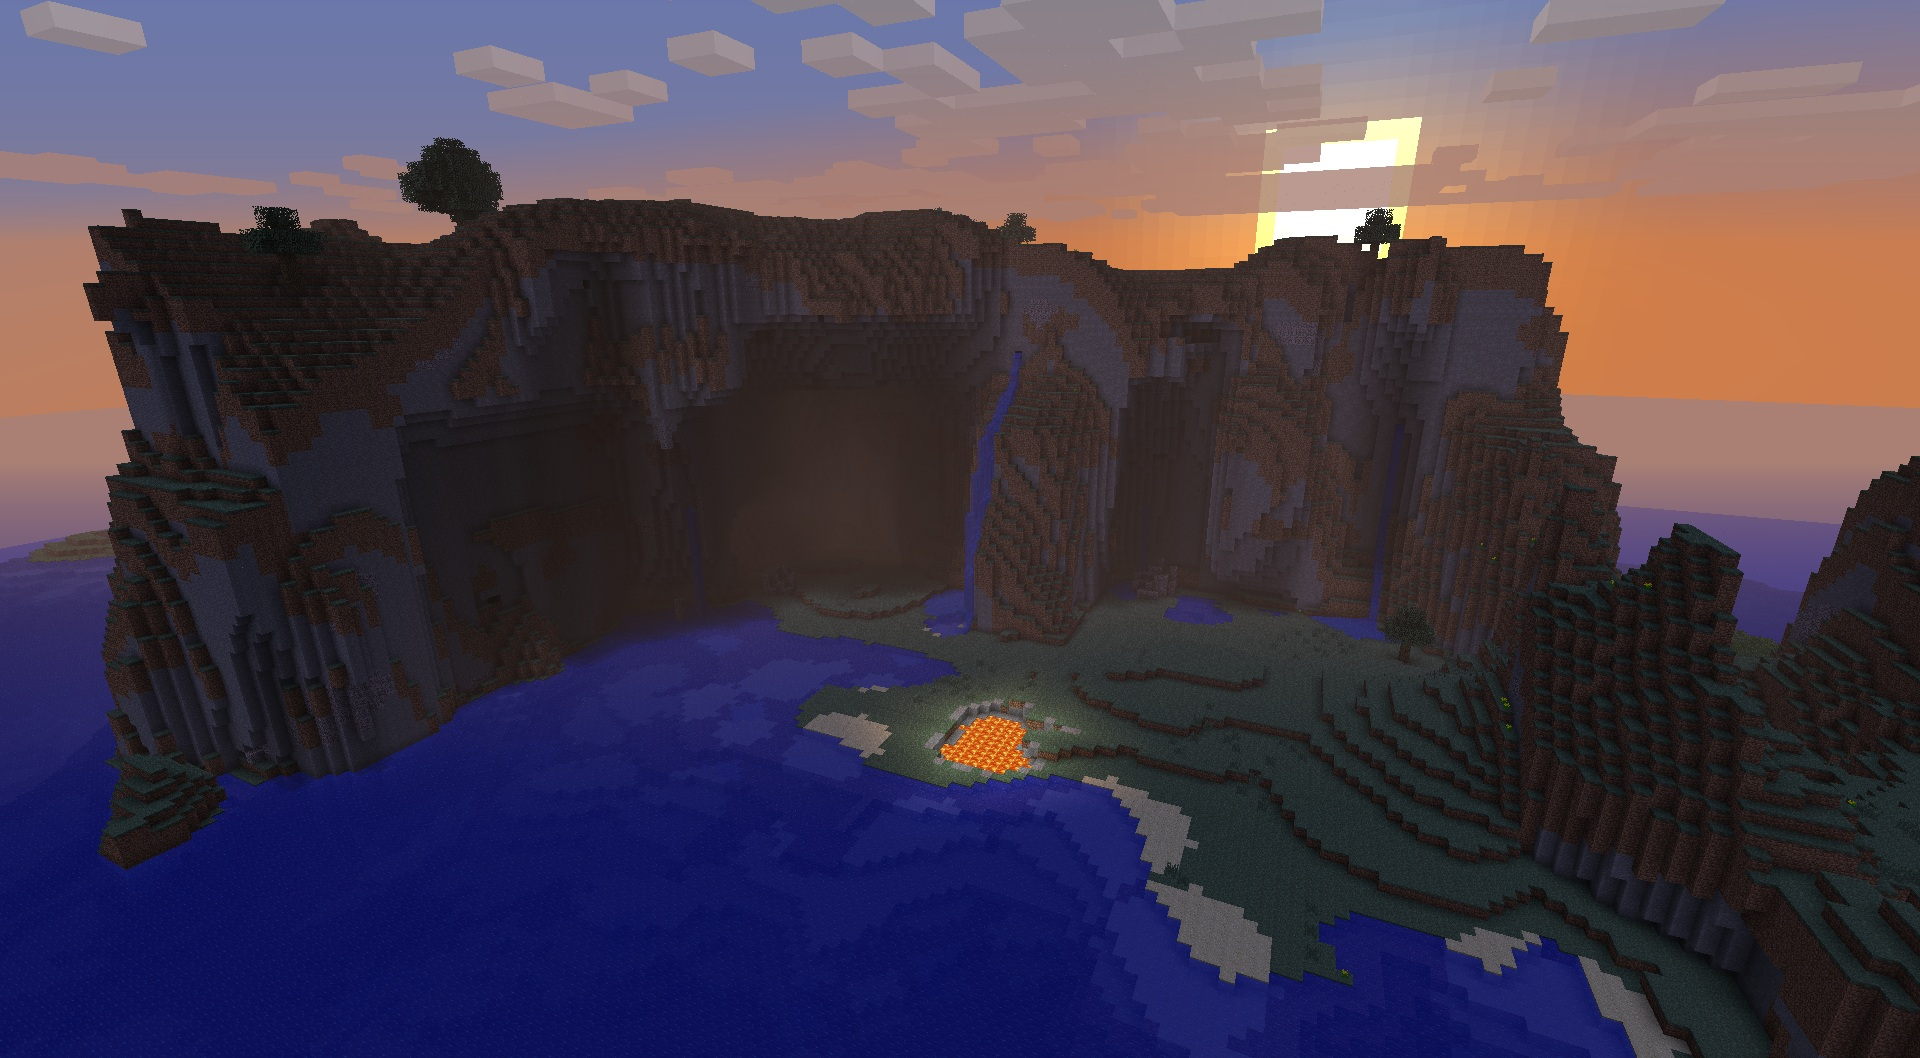 psion games update adventure biomes says looks cool very couple weeks parts into doing personally dont know when that thread minecraft server though content official most impressed everything removed video